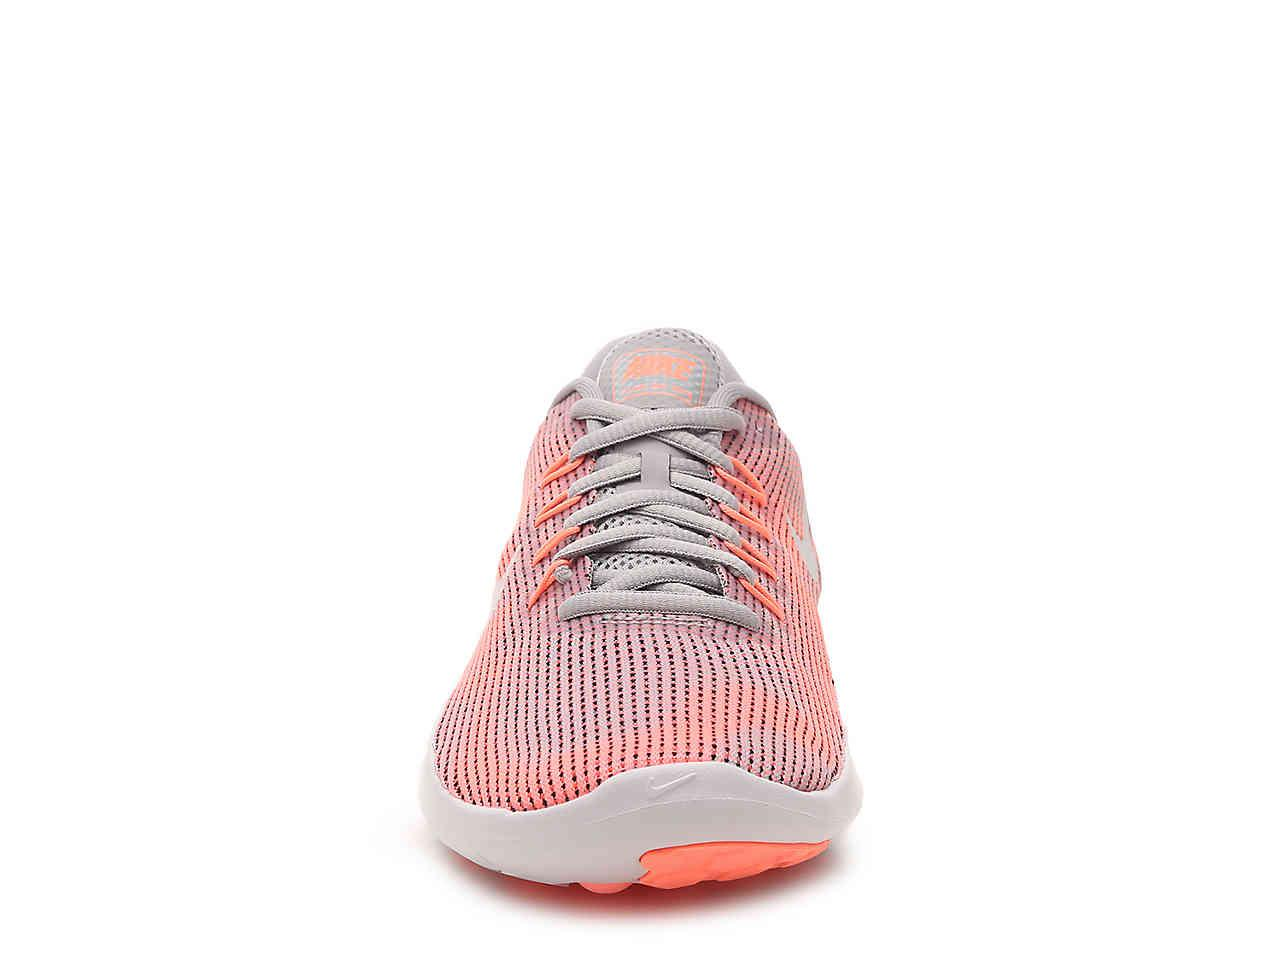 caa89dabe6554 ... official view fullscreen 2f6d0 ef274 official view fullscreen 2f6d0  ef274  promo code for nike shoes sneakers tennis shoes running shoes dsw ...